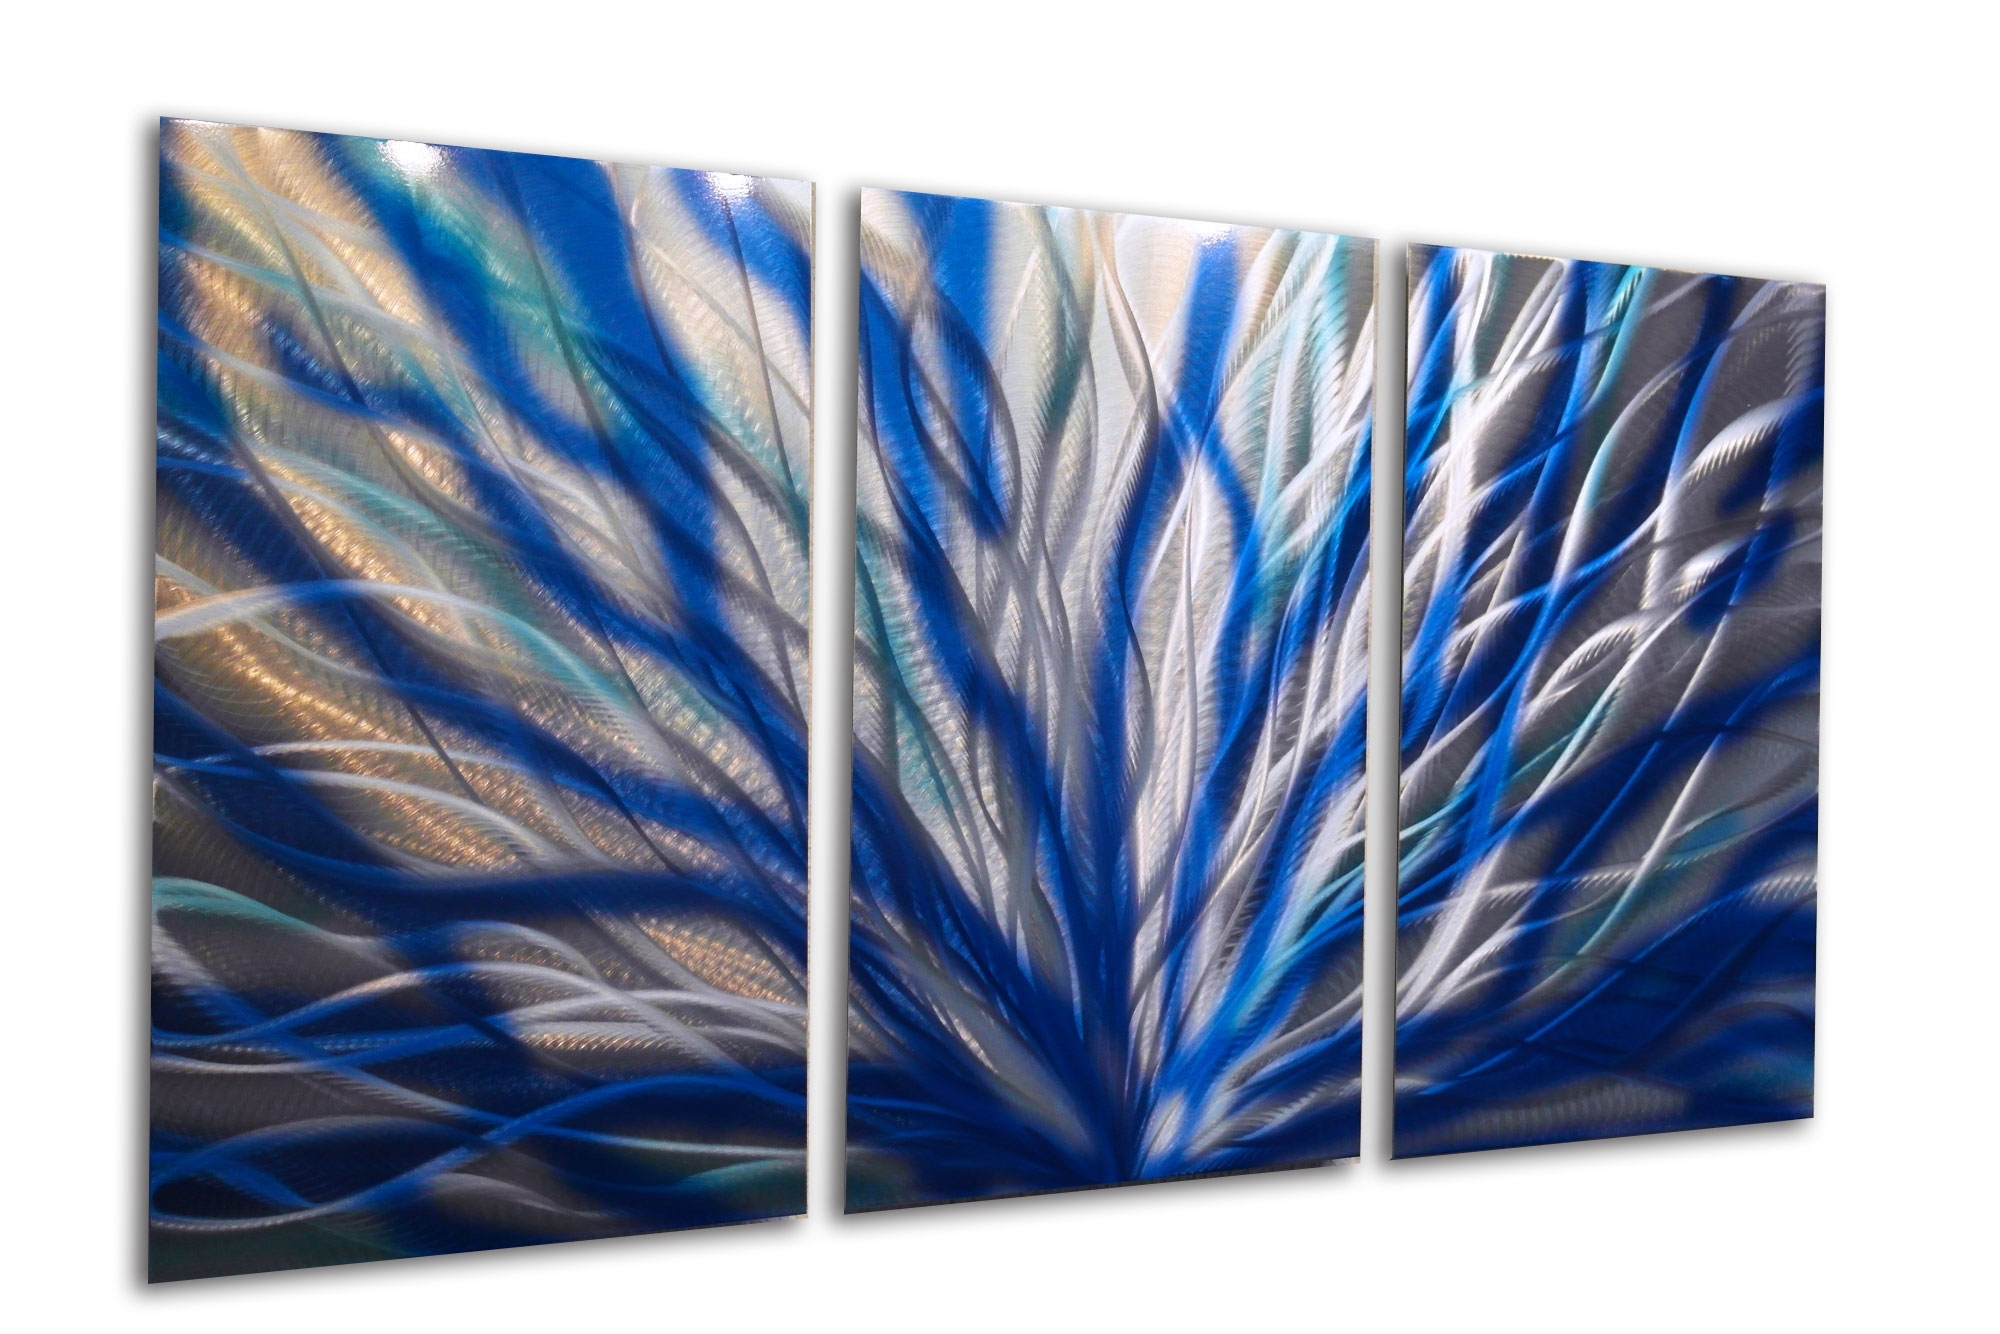 Radiance Blue 47 V2 – Metal Wall Art Abstract Sculpture Modern Within 2018 Aqua Abstract Wall Art (View 14 of 20)